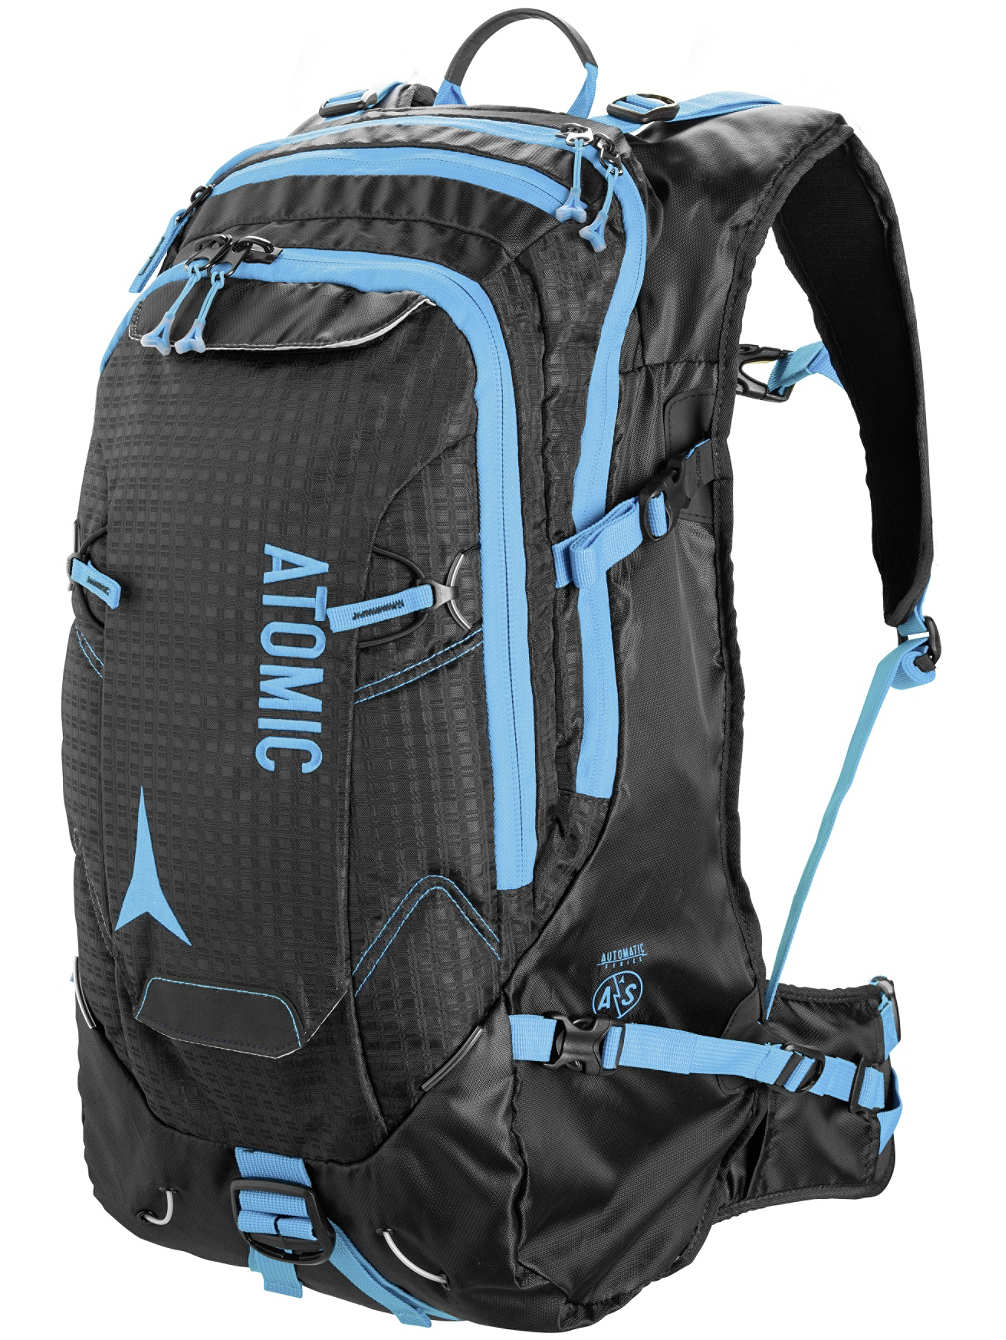 Atomic - Automatic pack 25l